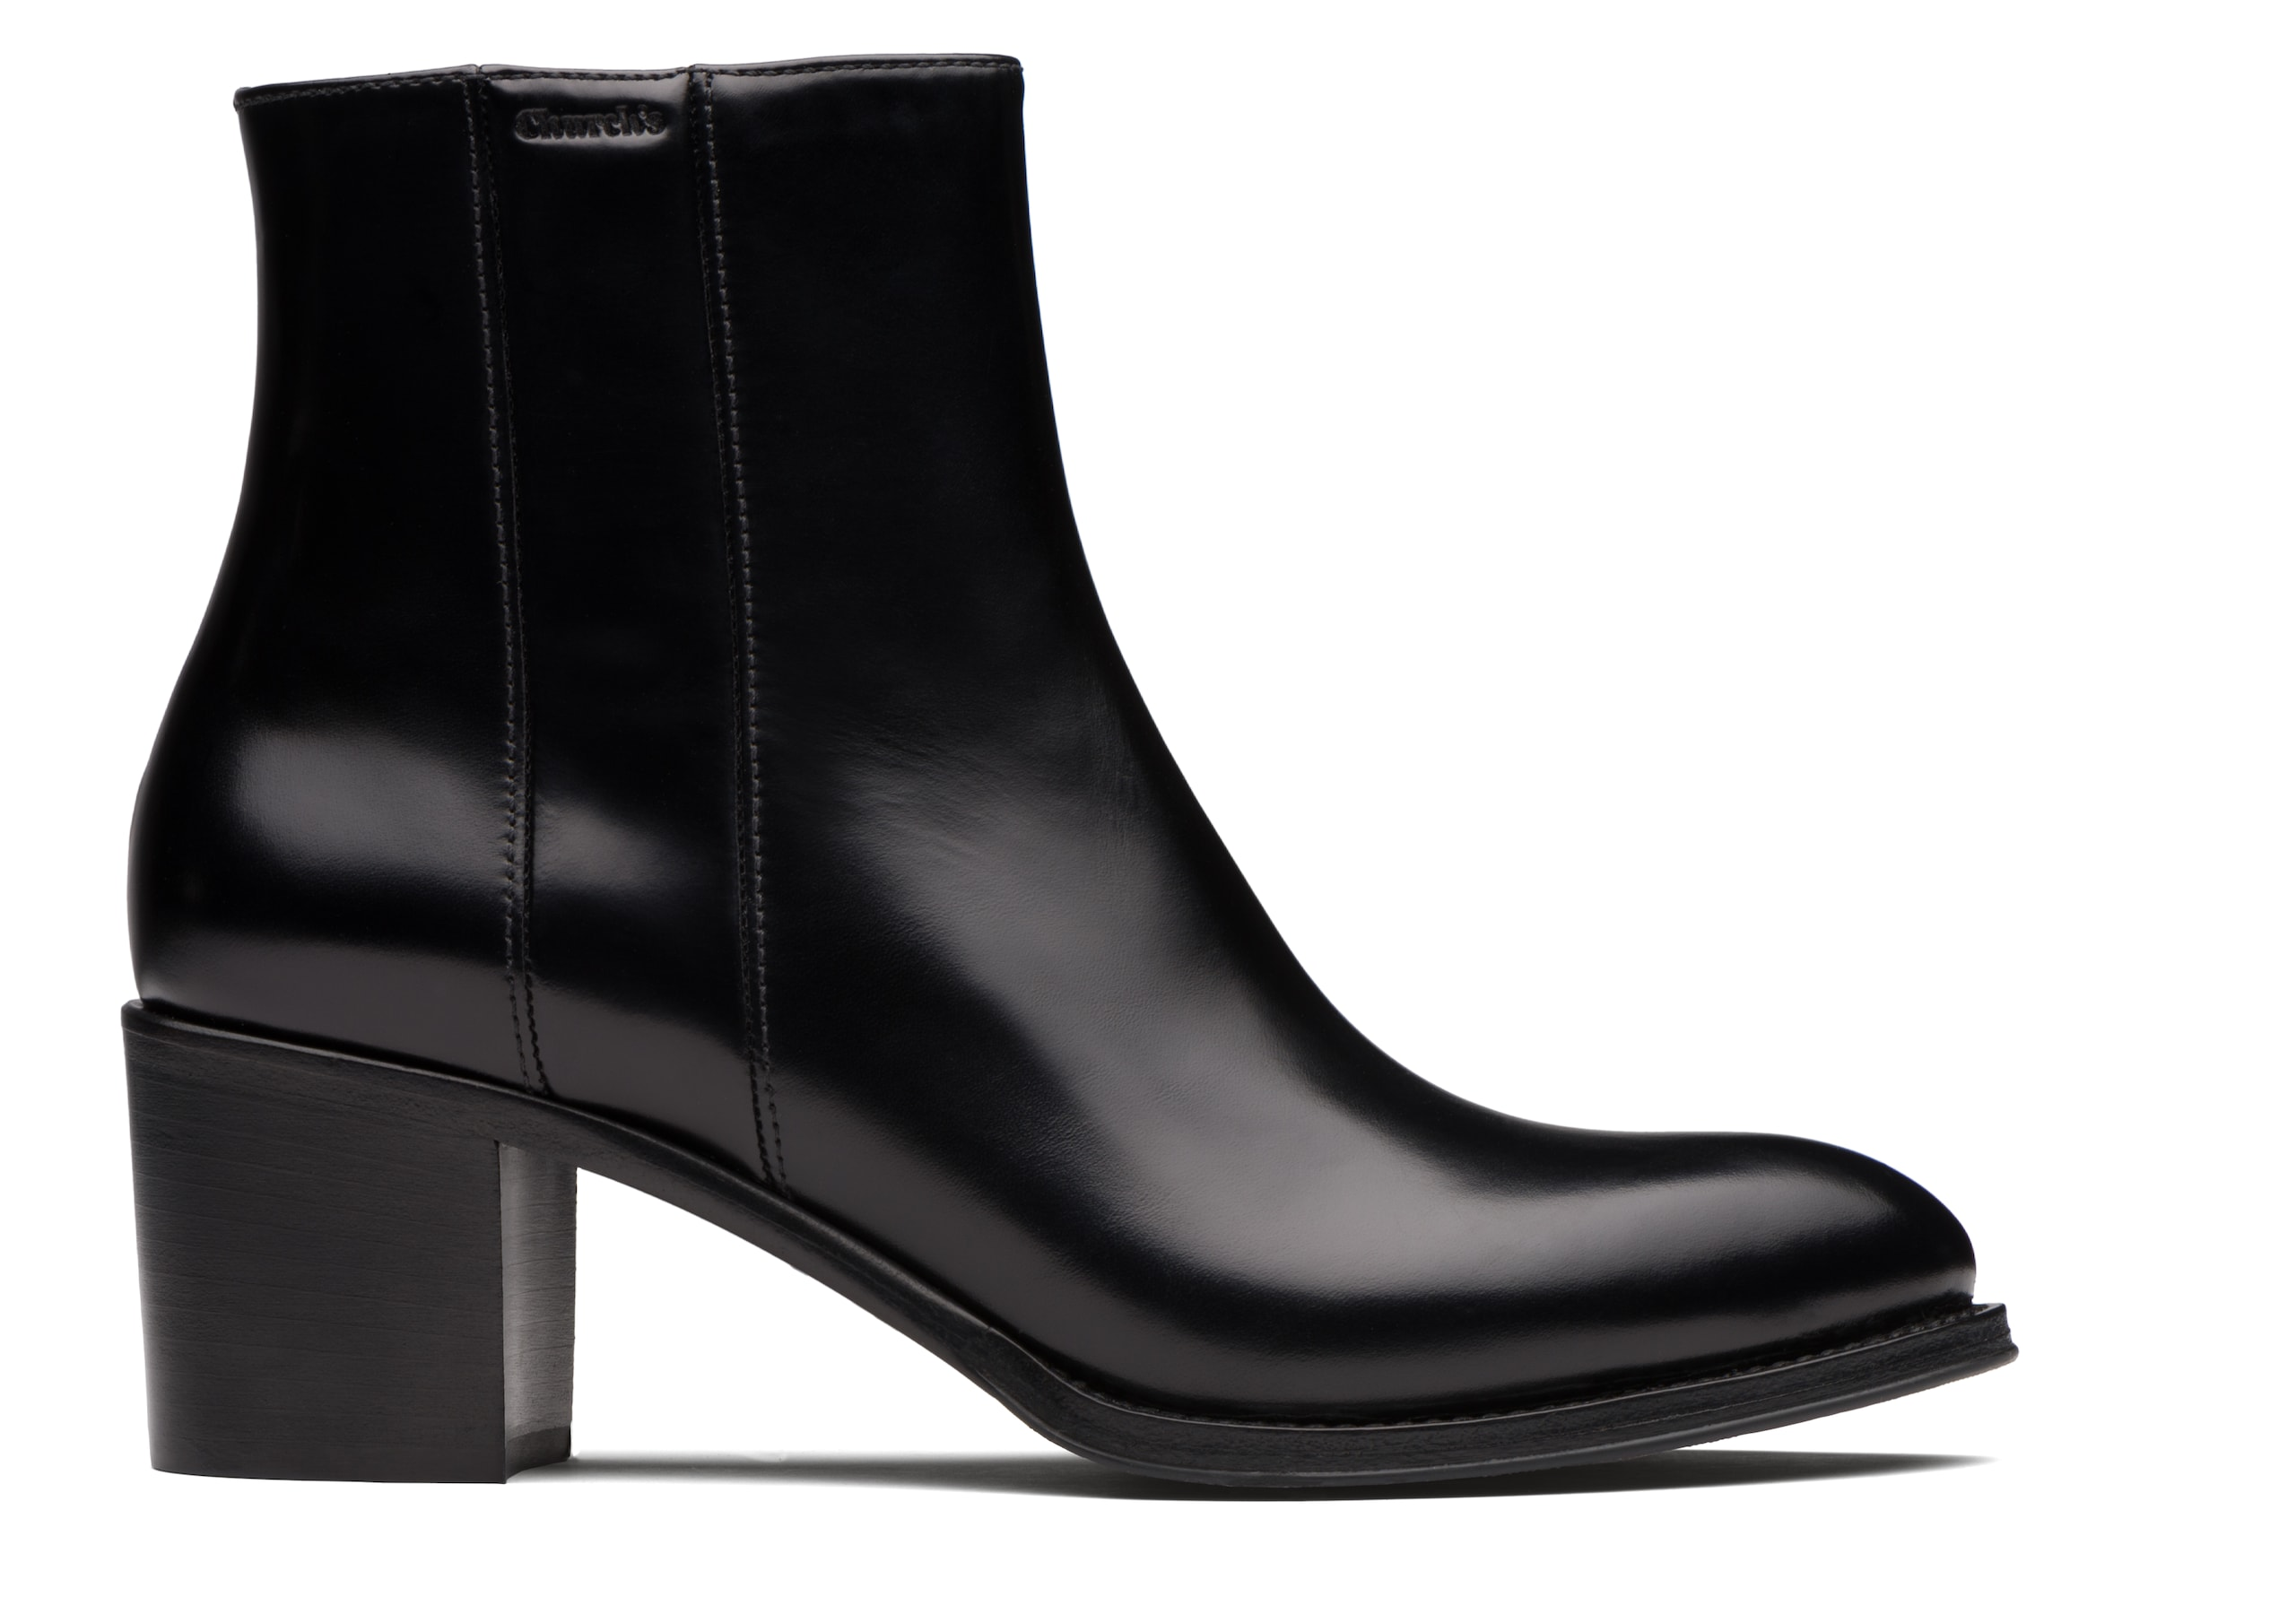 Carin 55 Church's Polished Fumè Heeled Boot Black